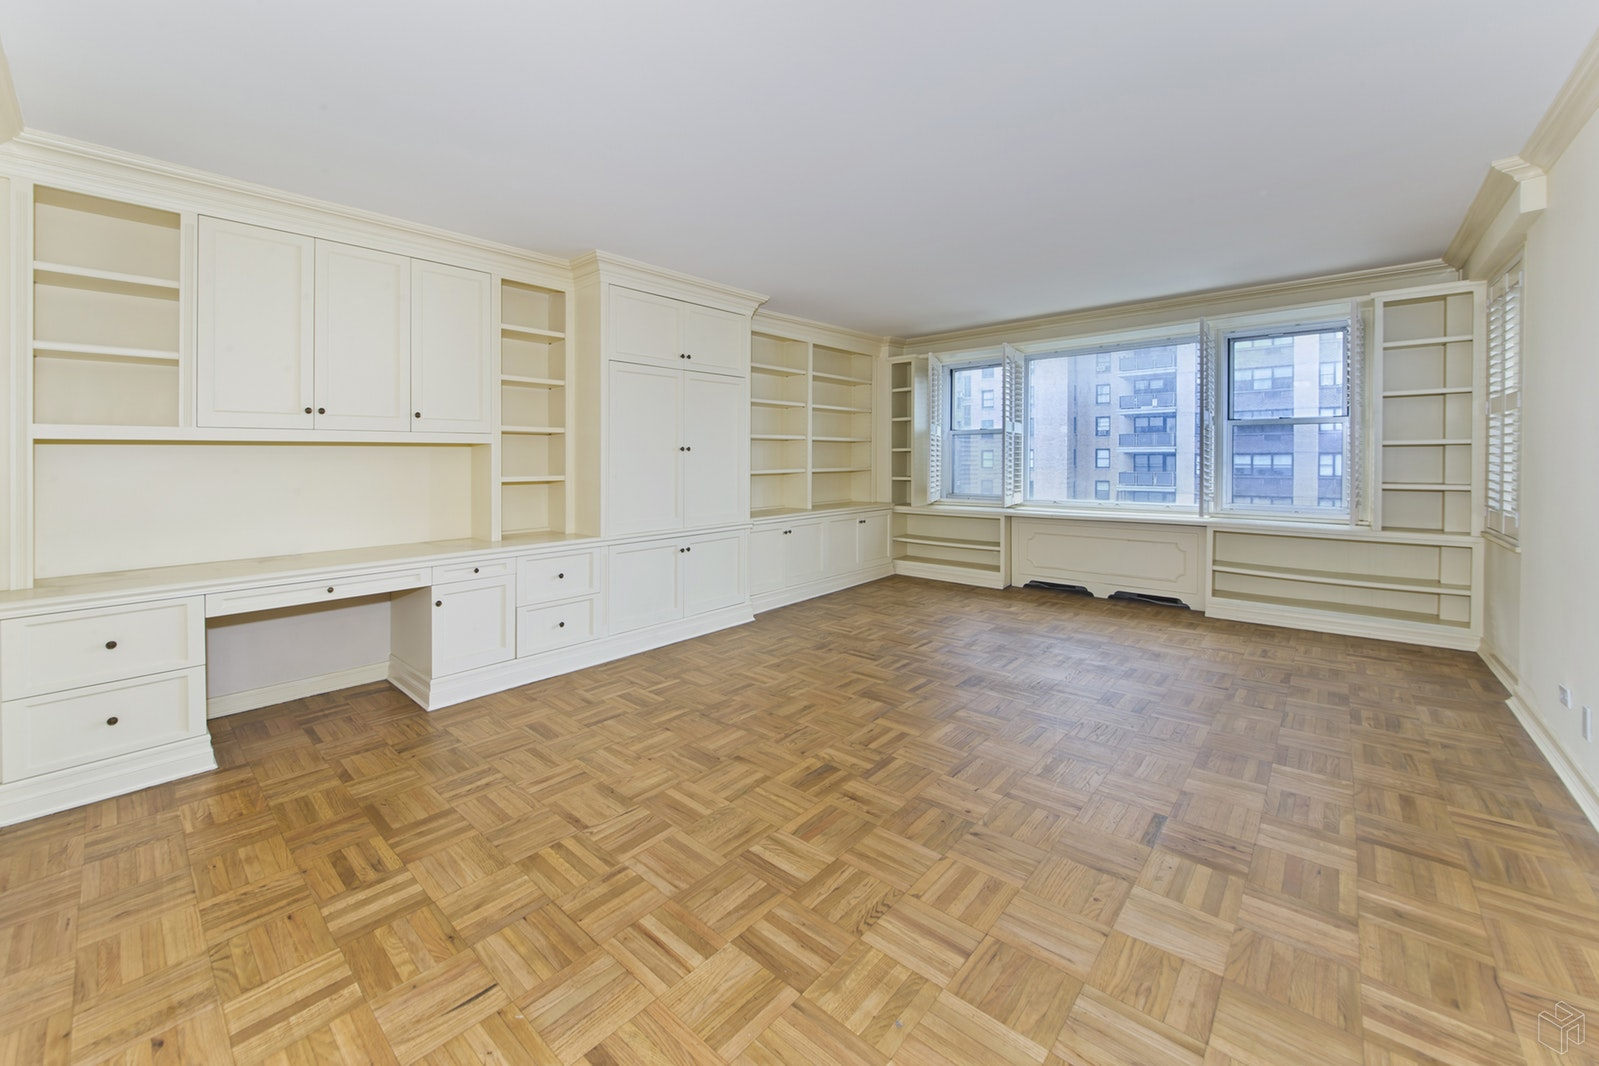 201 East 79th Street 8f, Upper East Side, NYC, 10075, $1,395,000, Property For Sale, Halstead Real Estate, Photo 2